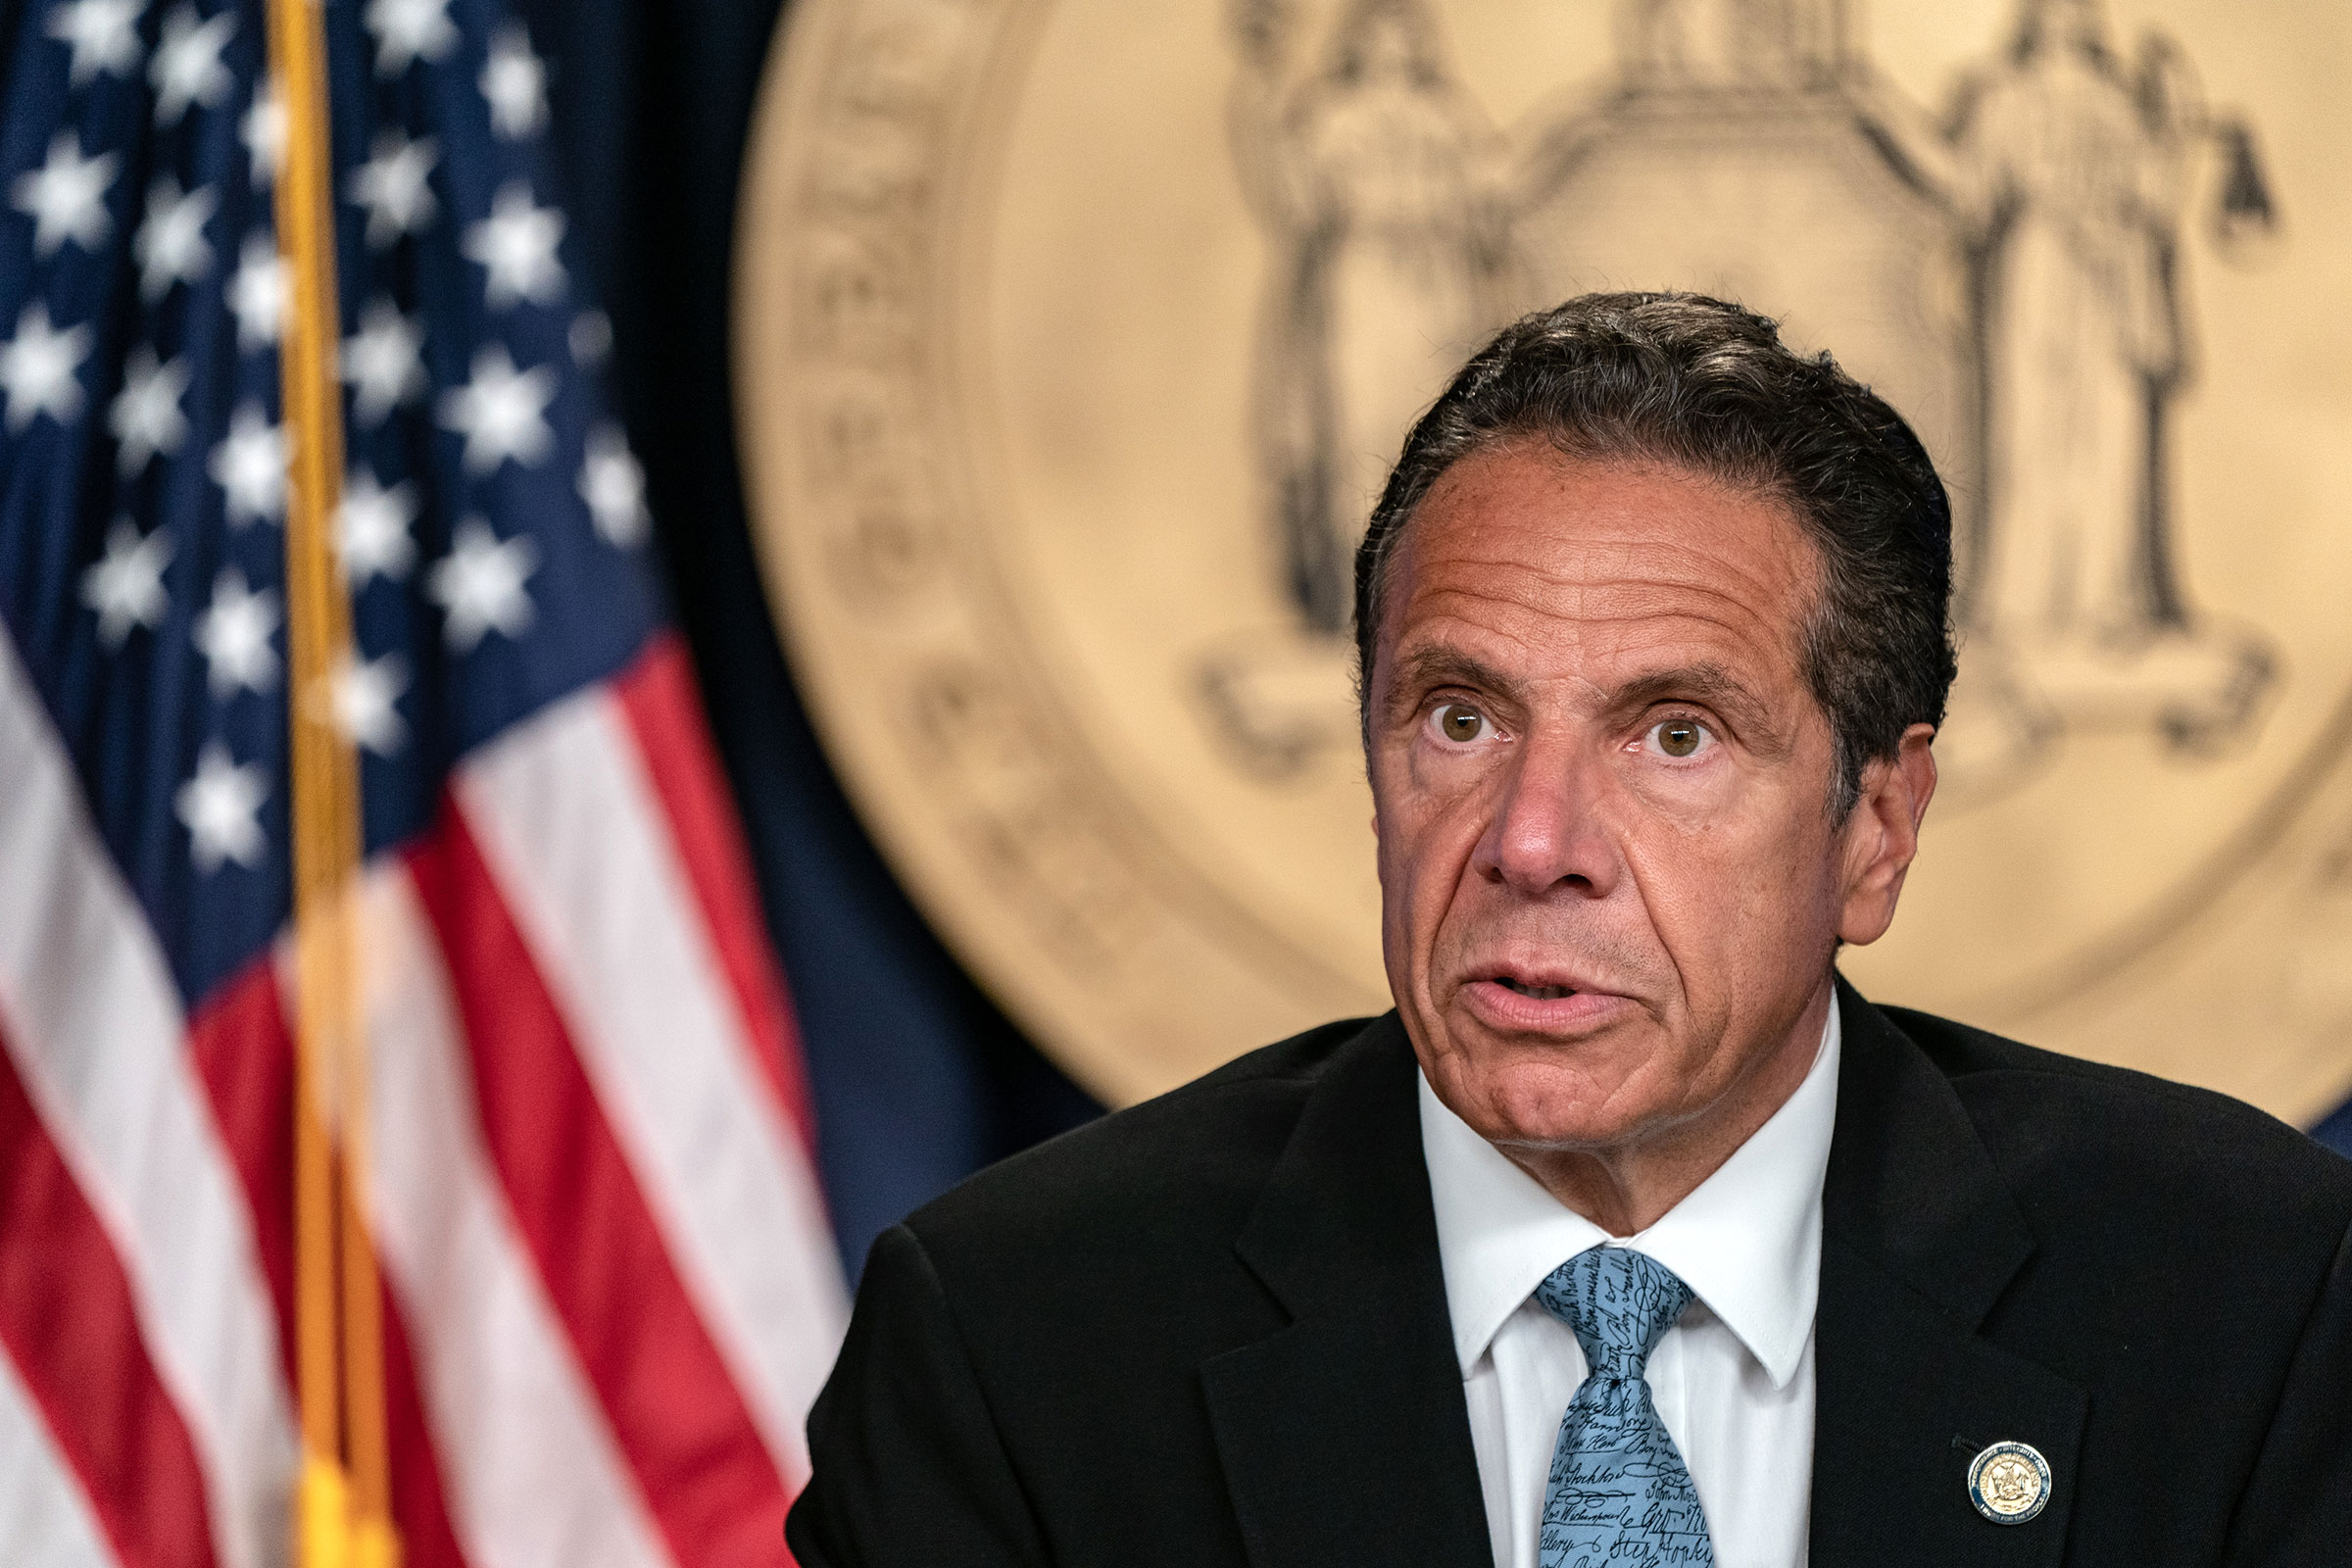 Father, fisherman, motorcycle enthusiast, 56th governor of new york. NY Gov. Andrew Cuomo reverses course on family ...